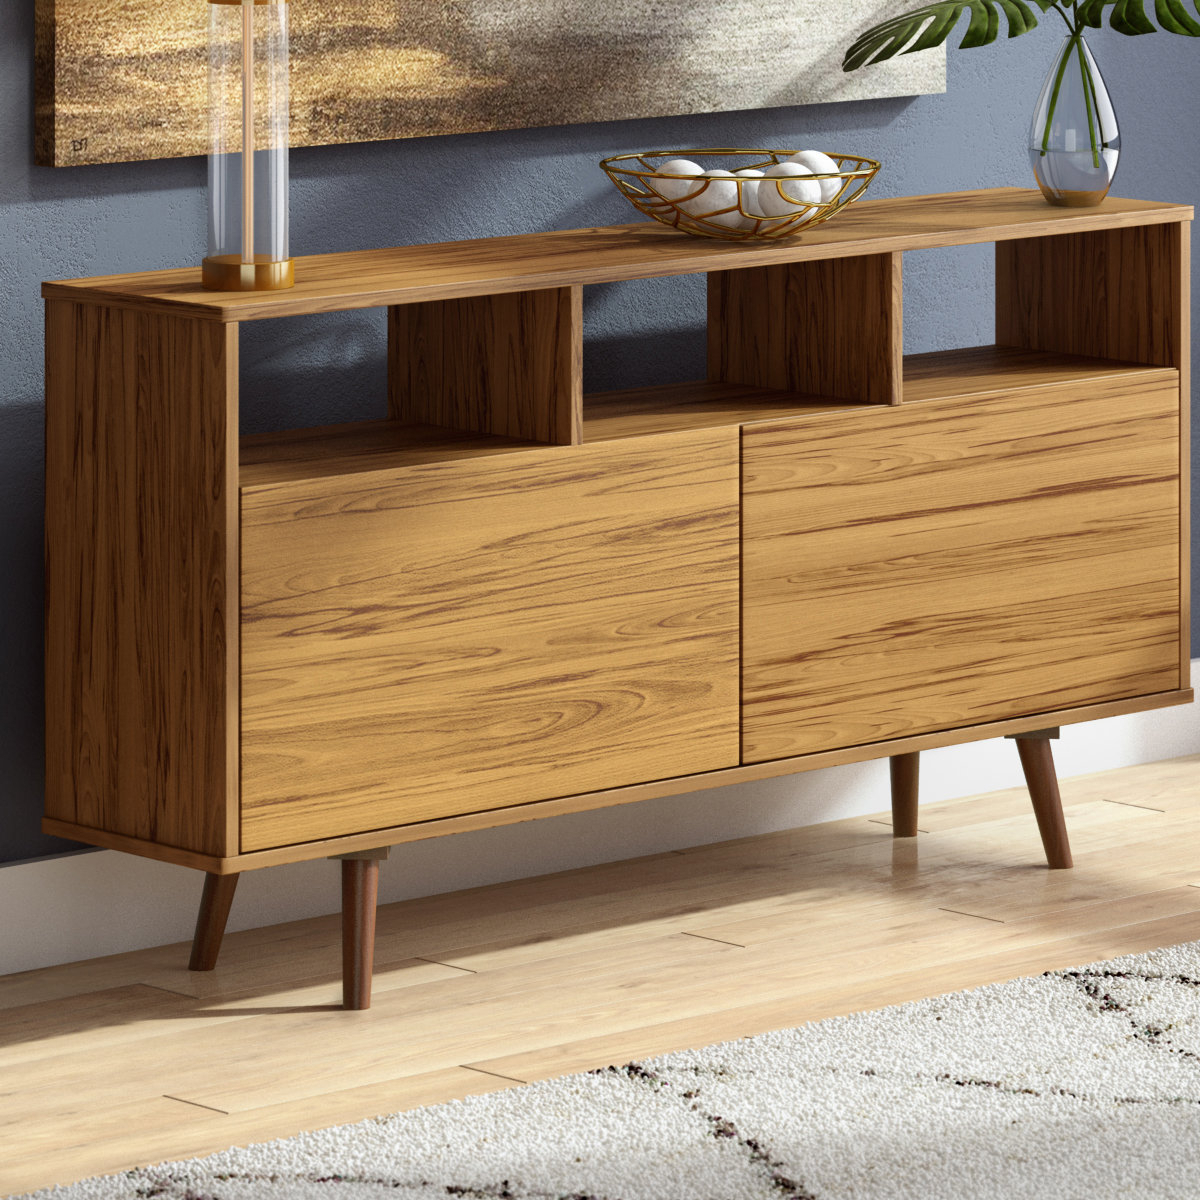 Narrow Buffet Table | Wayfair In Best And Newest Malcom Buffet Table (View 15 of 20)